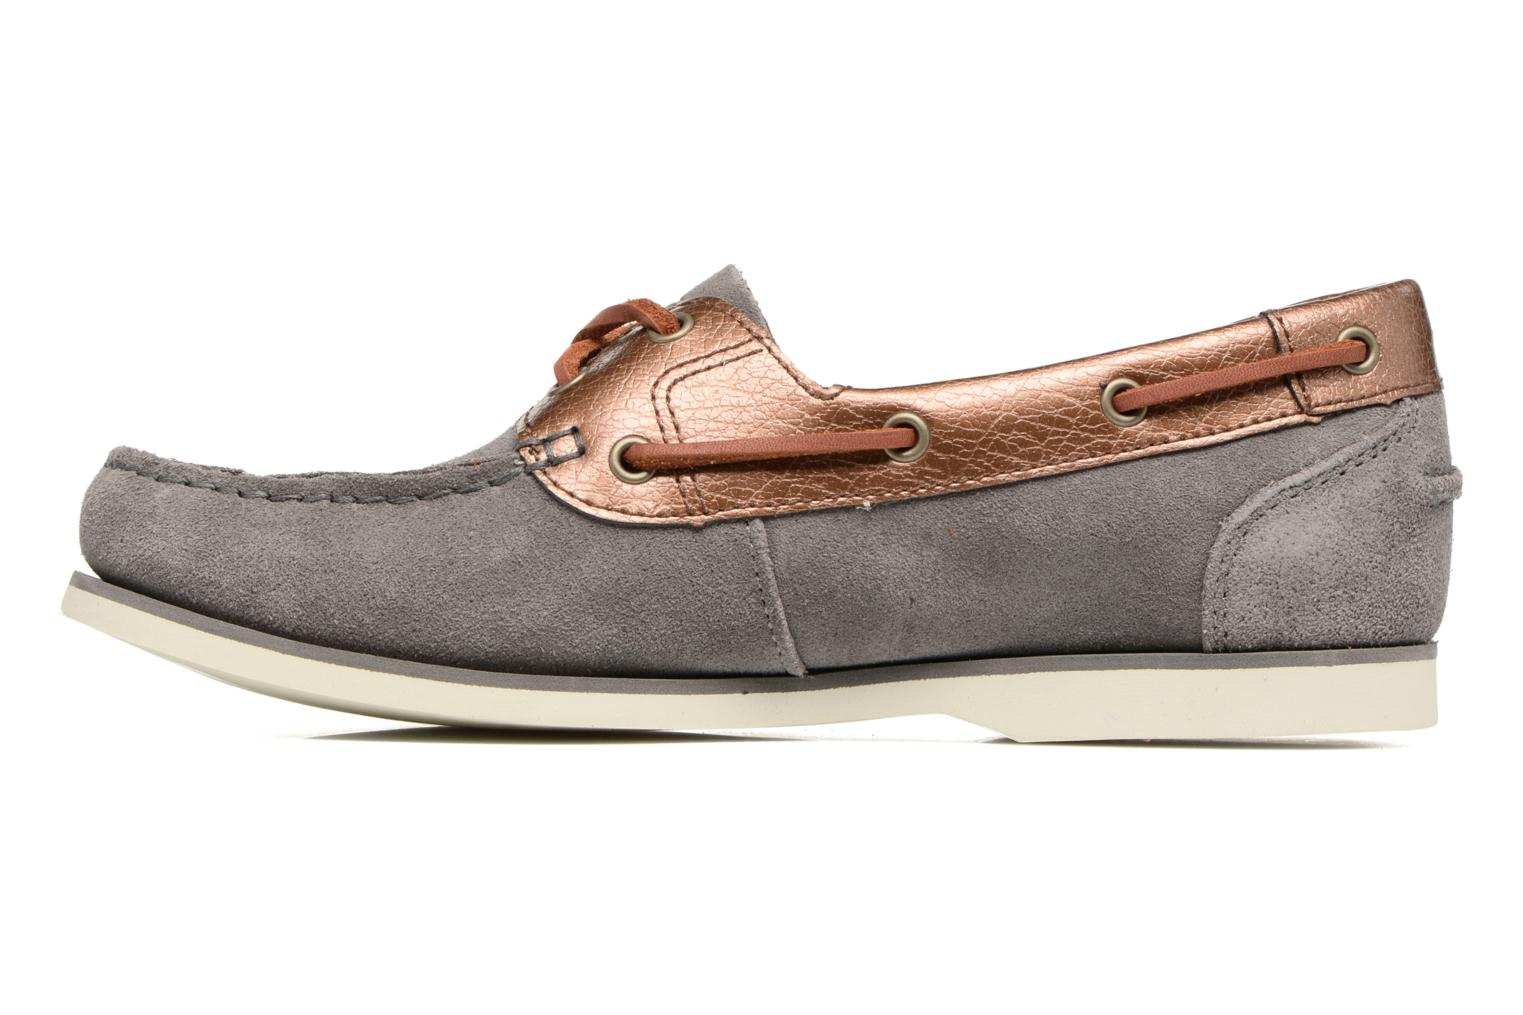 Chaussures à lacets Timberland Classic Boat Unlined Boat Gris vue face